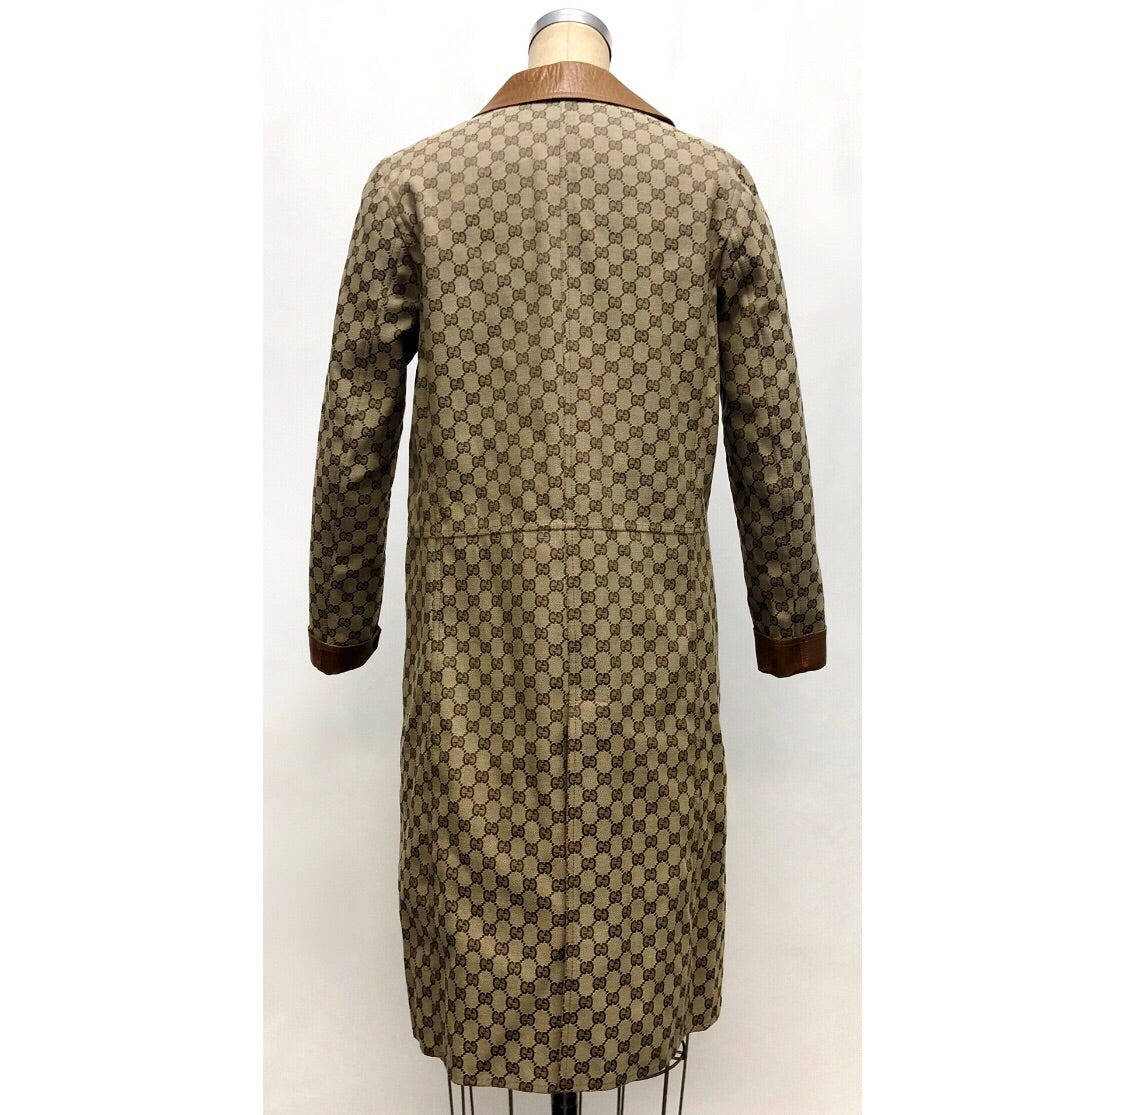 Gucci Vintage Monogram and Leather Coat